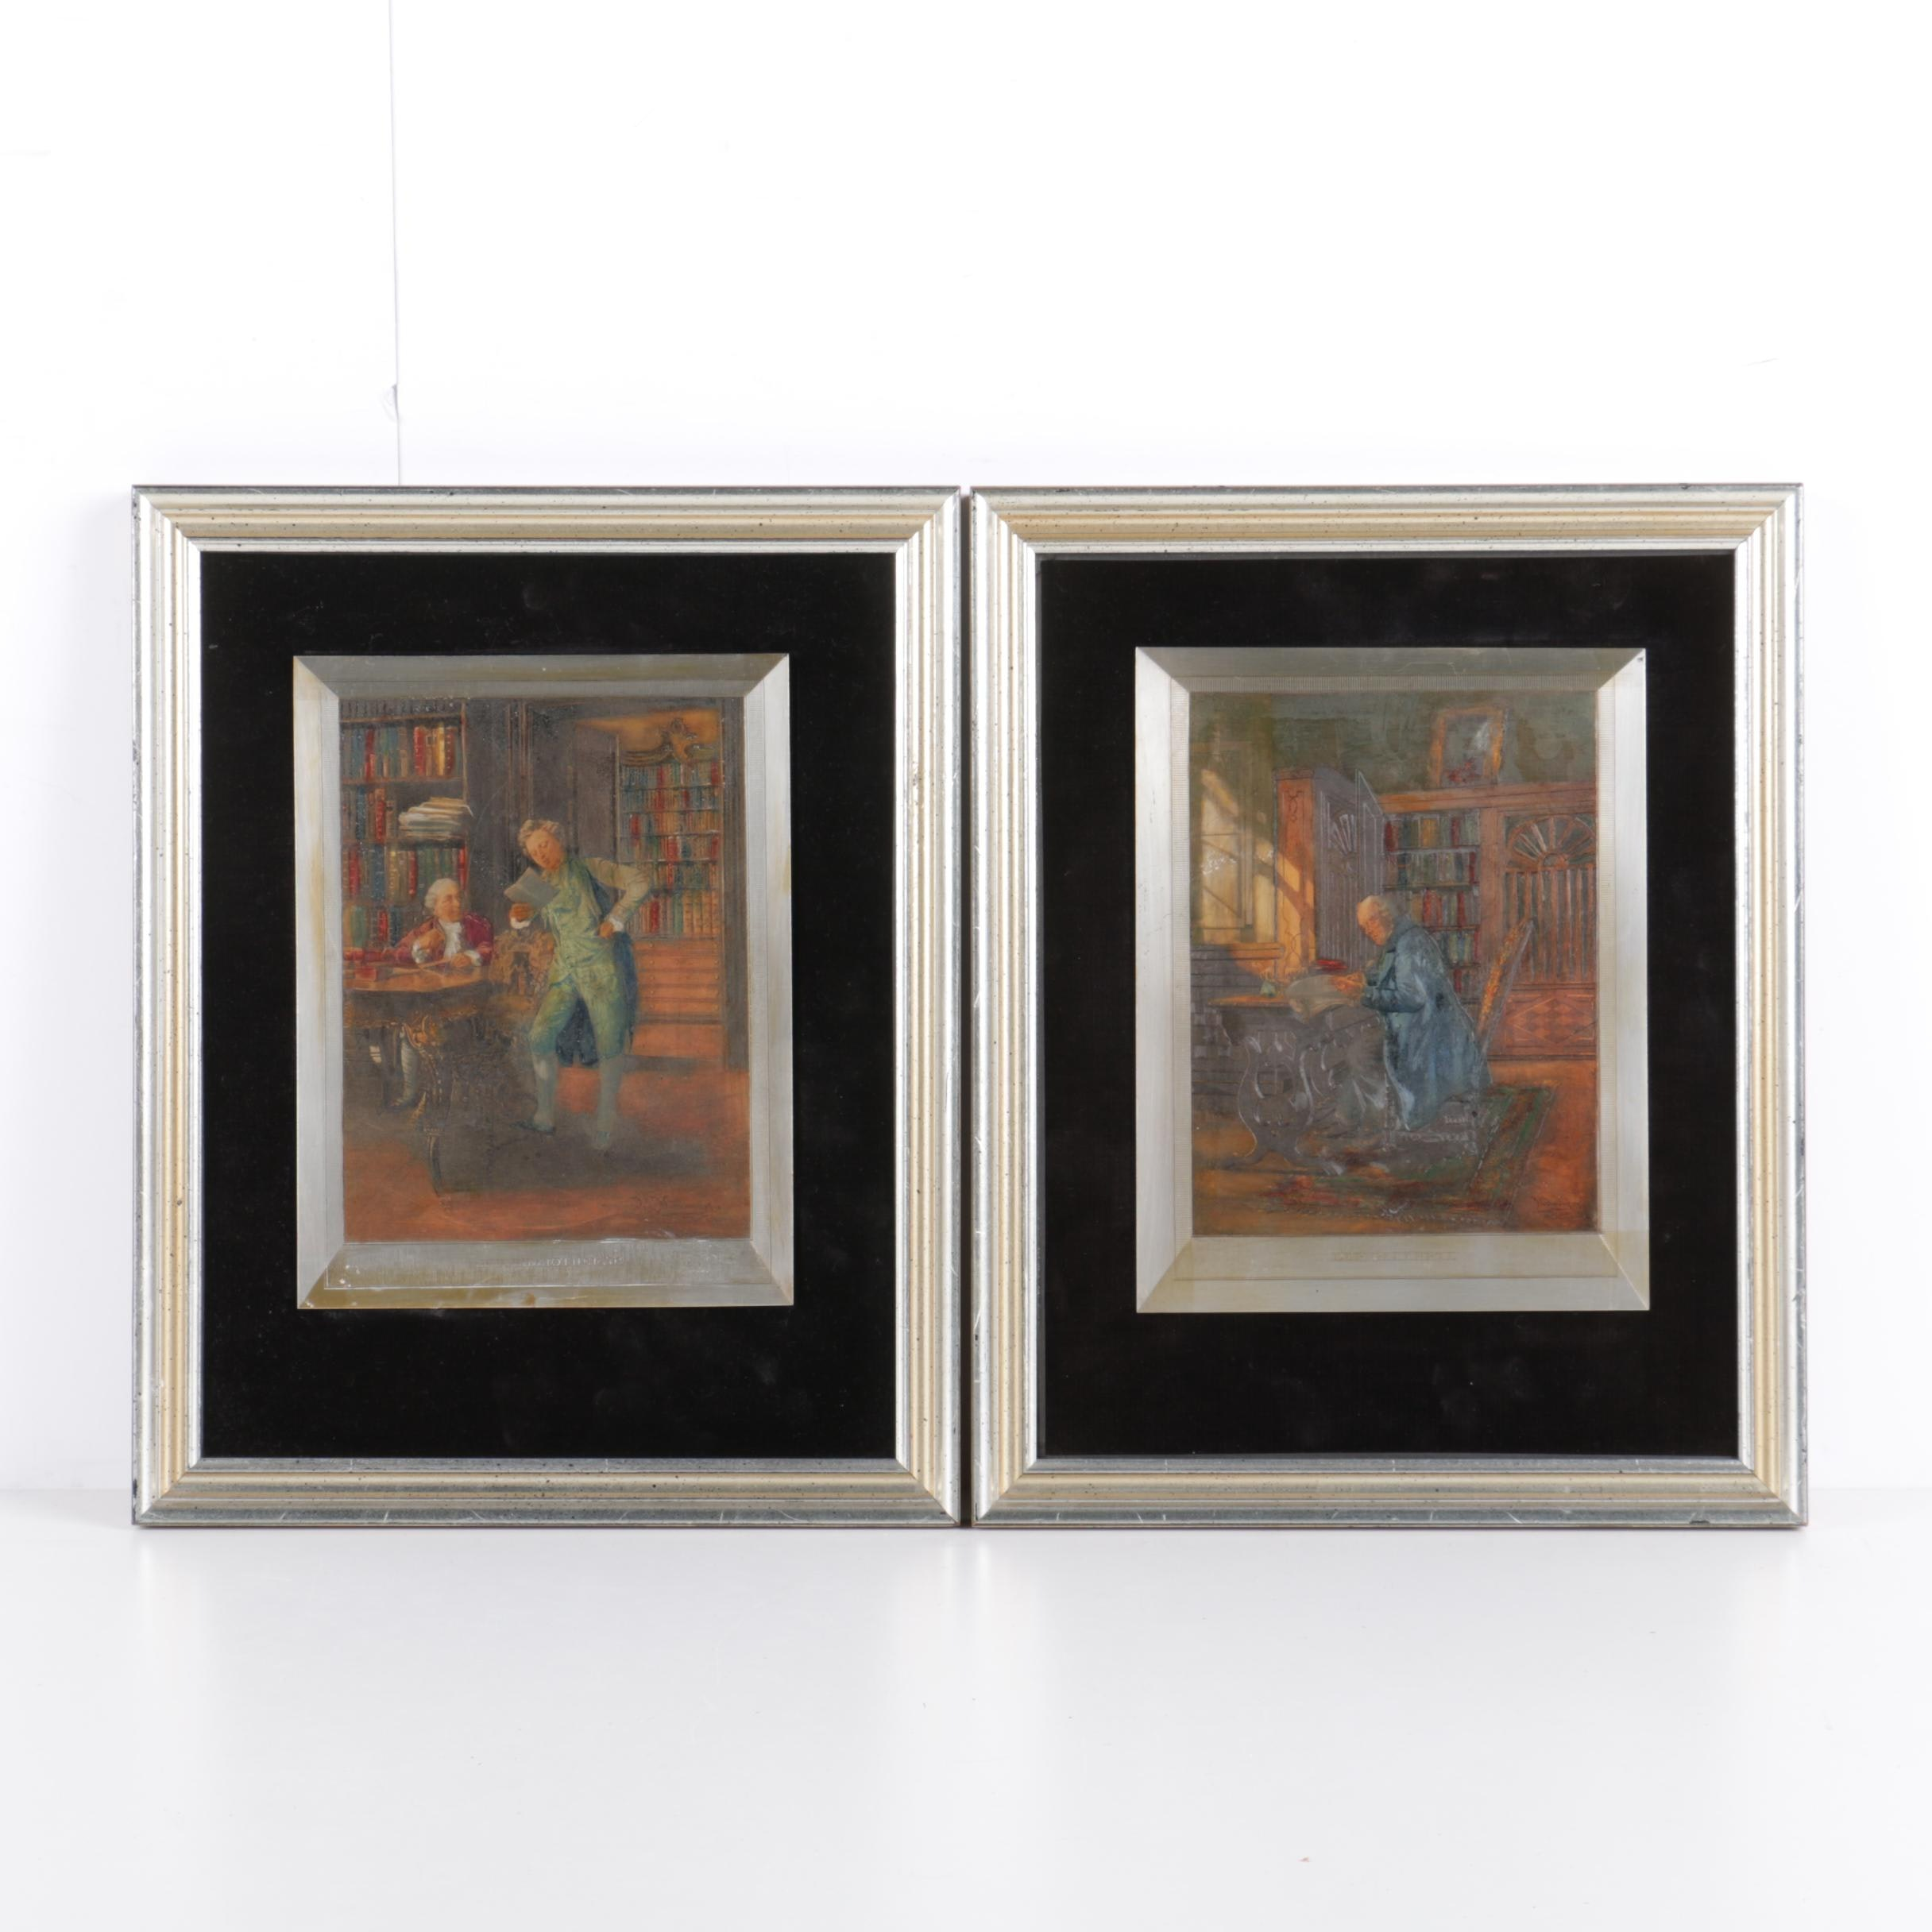 Two Debossed Metal Plaques after Johann Hamza Paintings